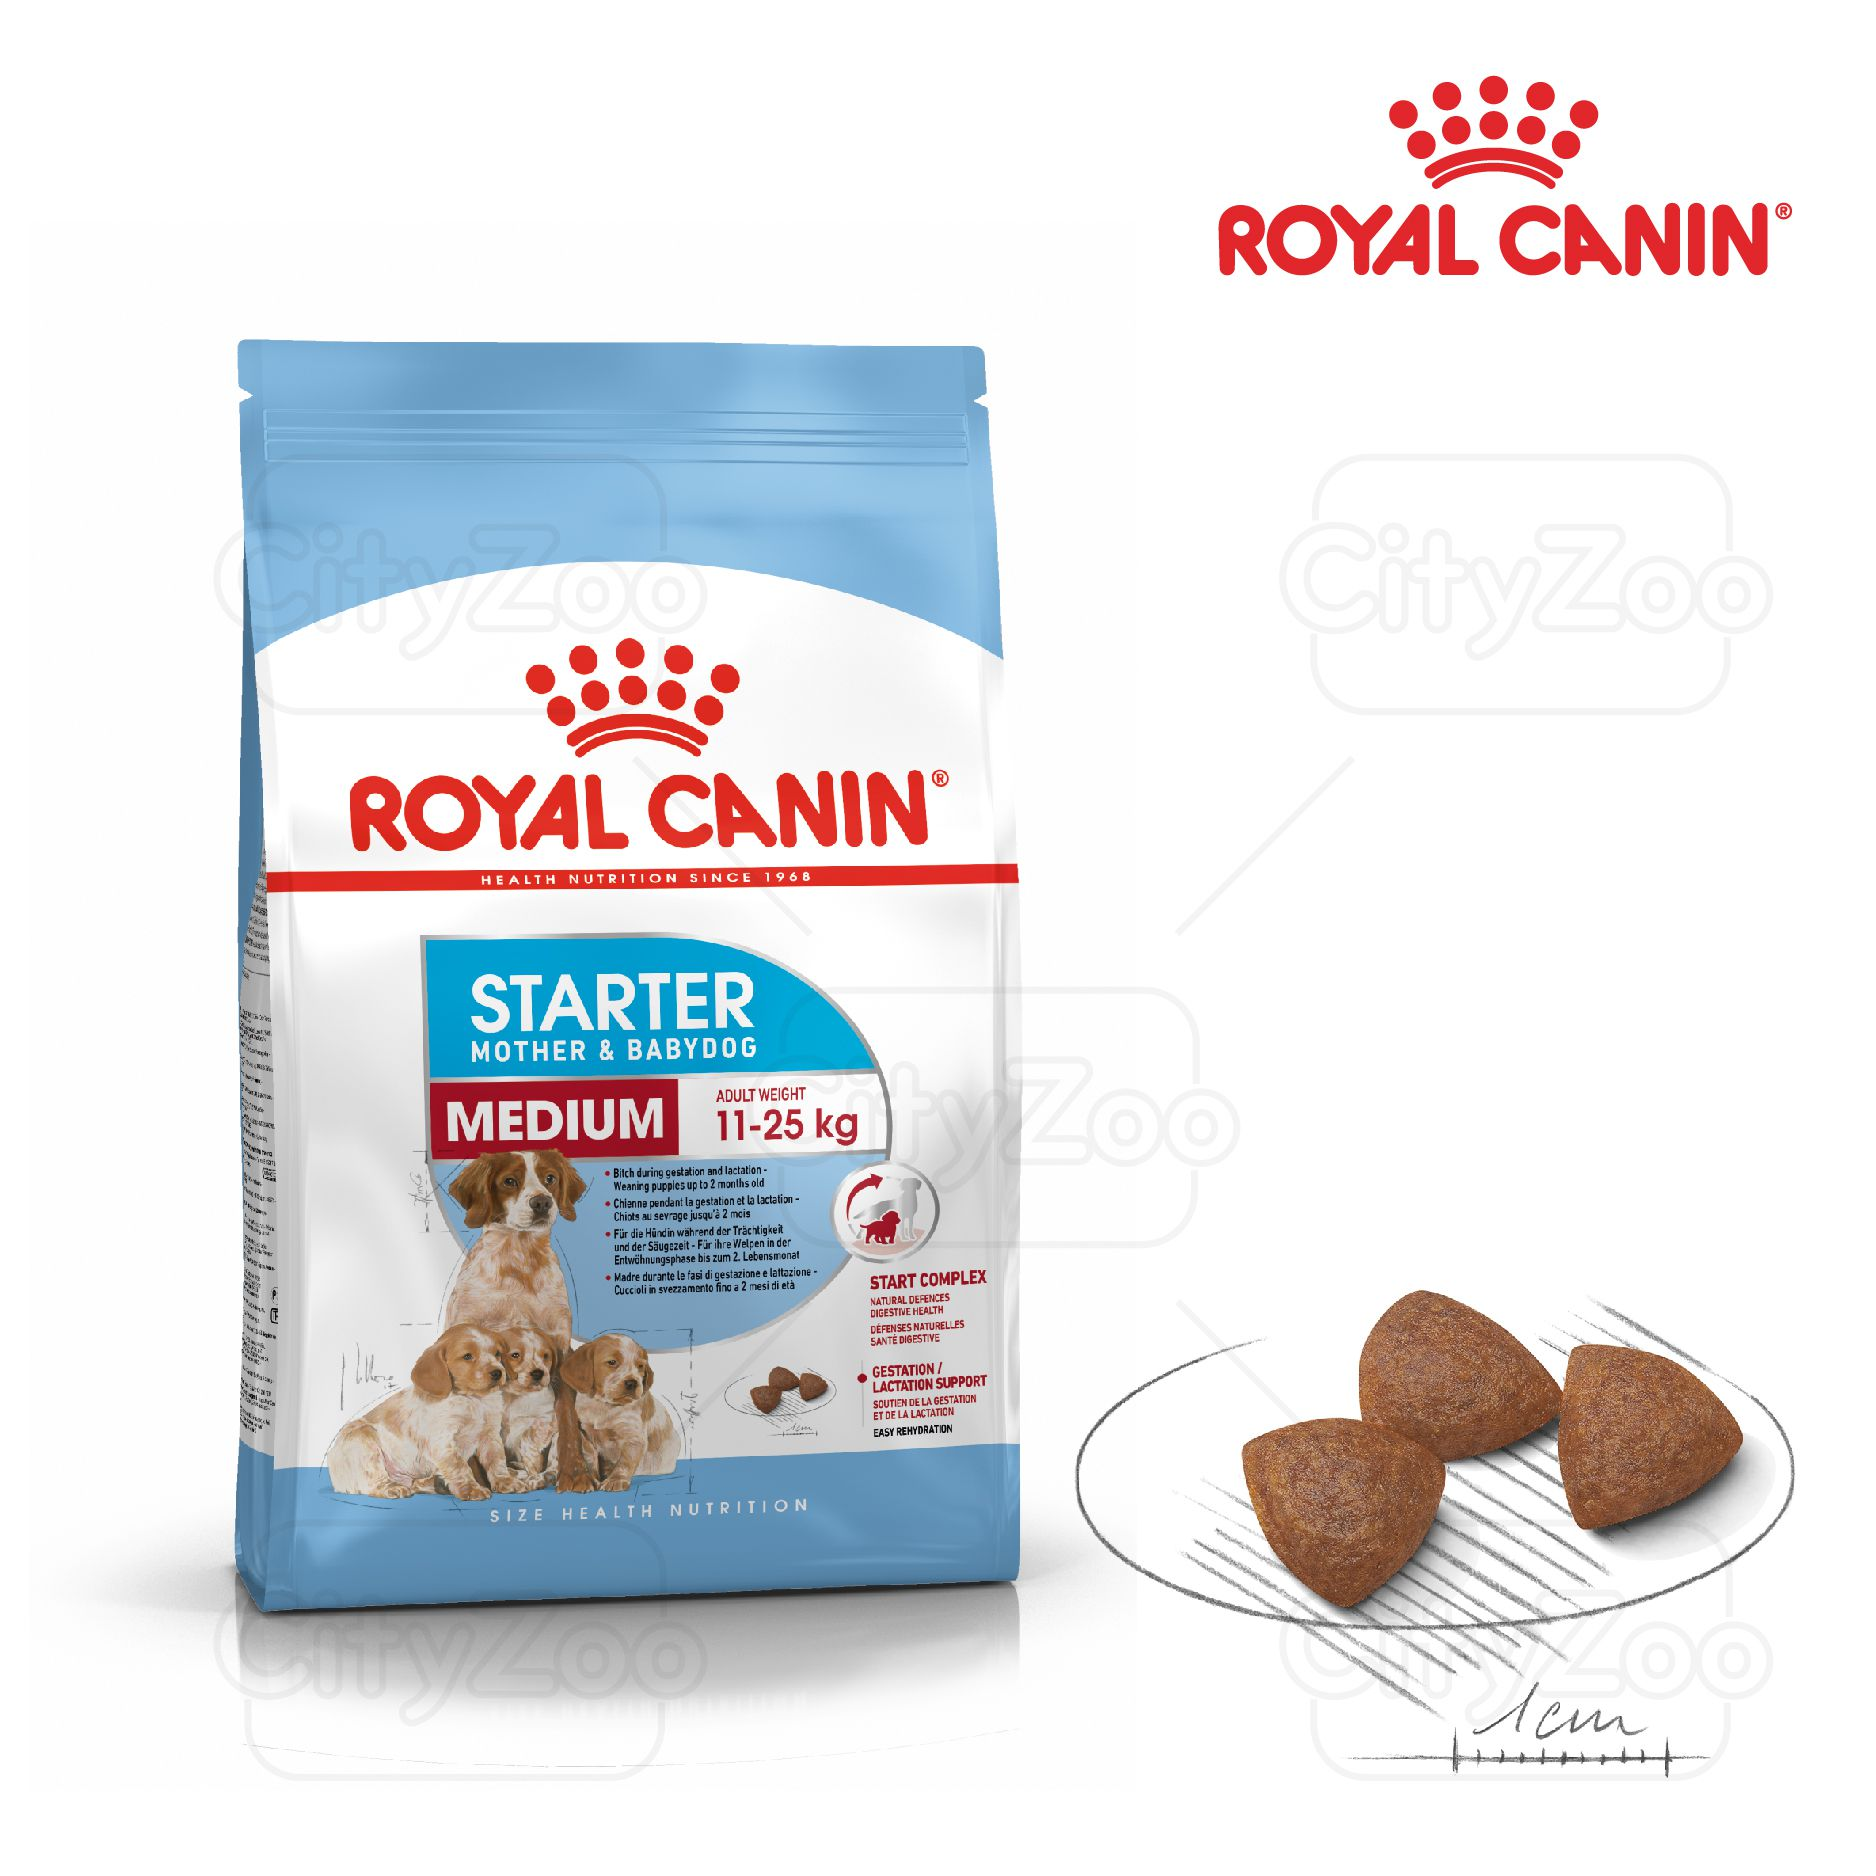 ROYAL CANIN MEDIUM STARTER MOTHER & BABYDOG 12kg